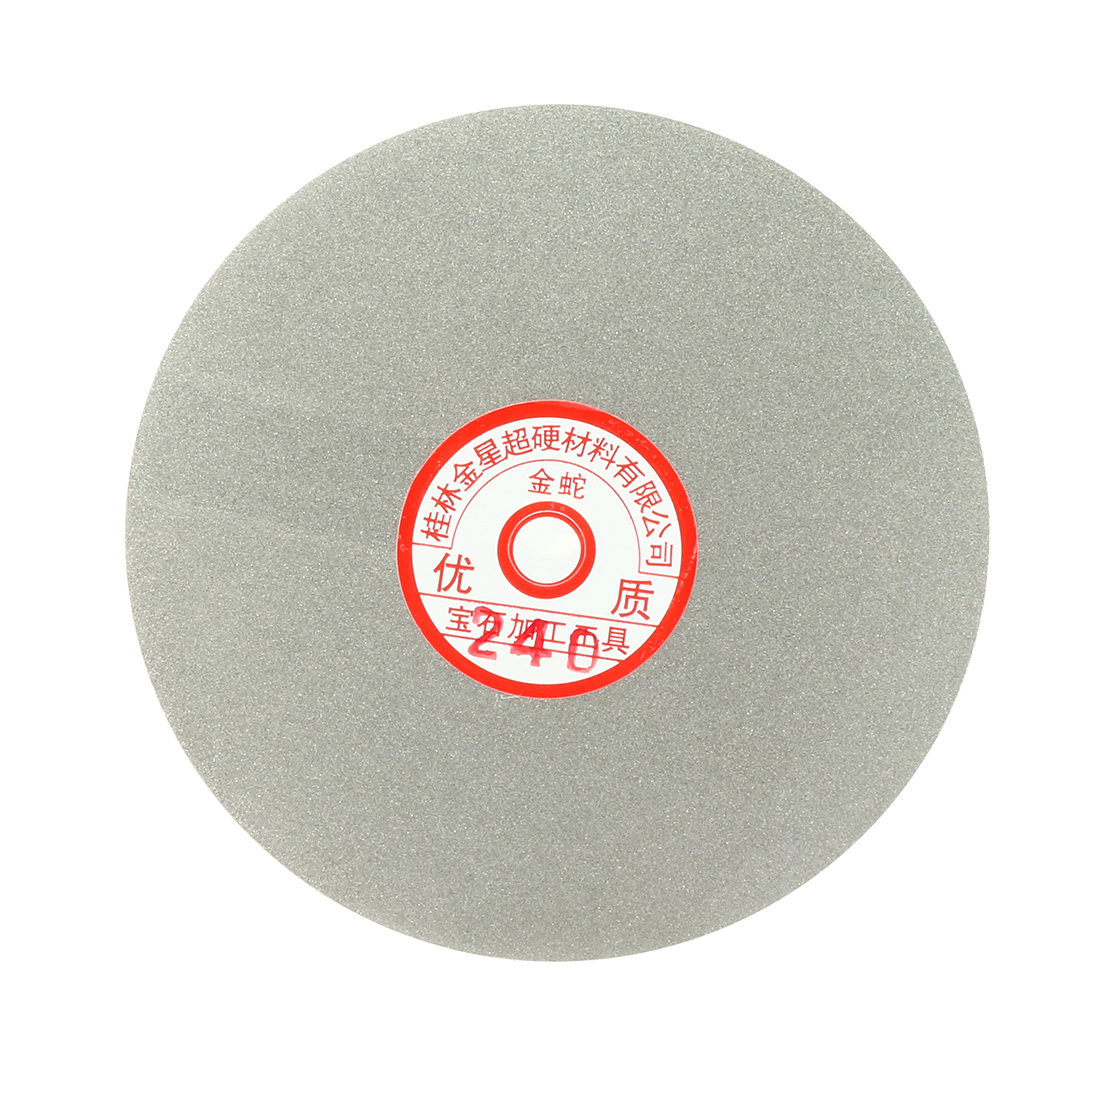 6-inch Grit 240 Diamond Coated Flat Lap Wheel Grinding Sanding Polishing Disc